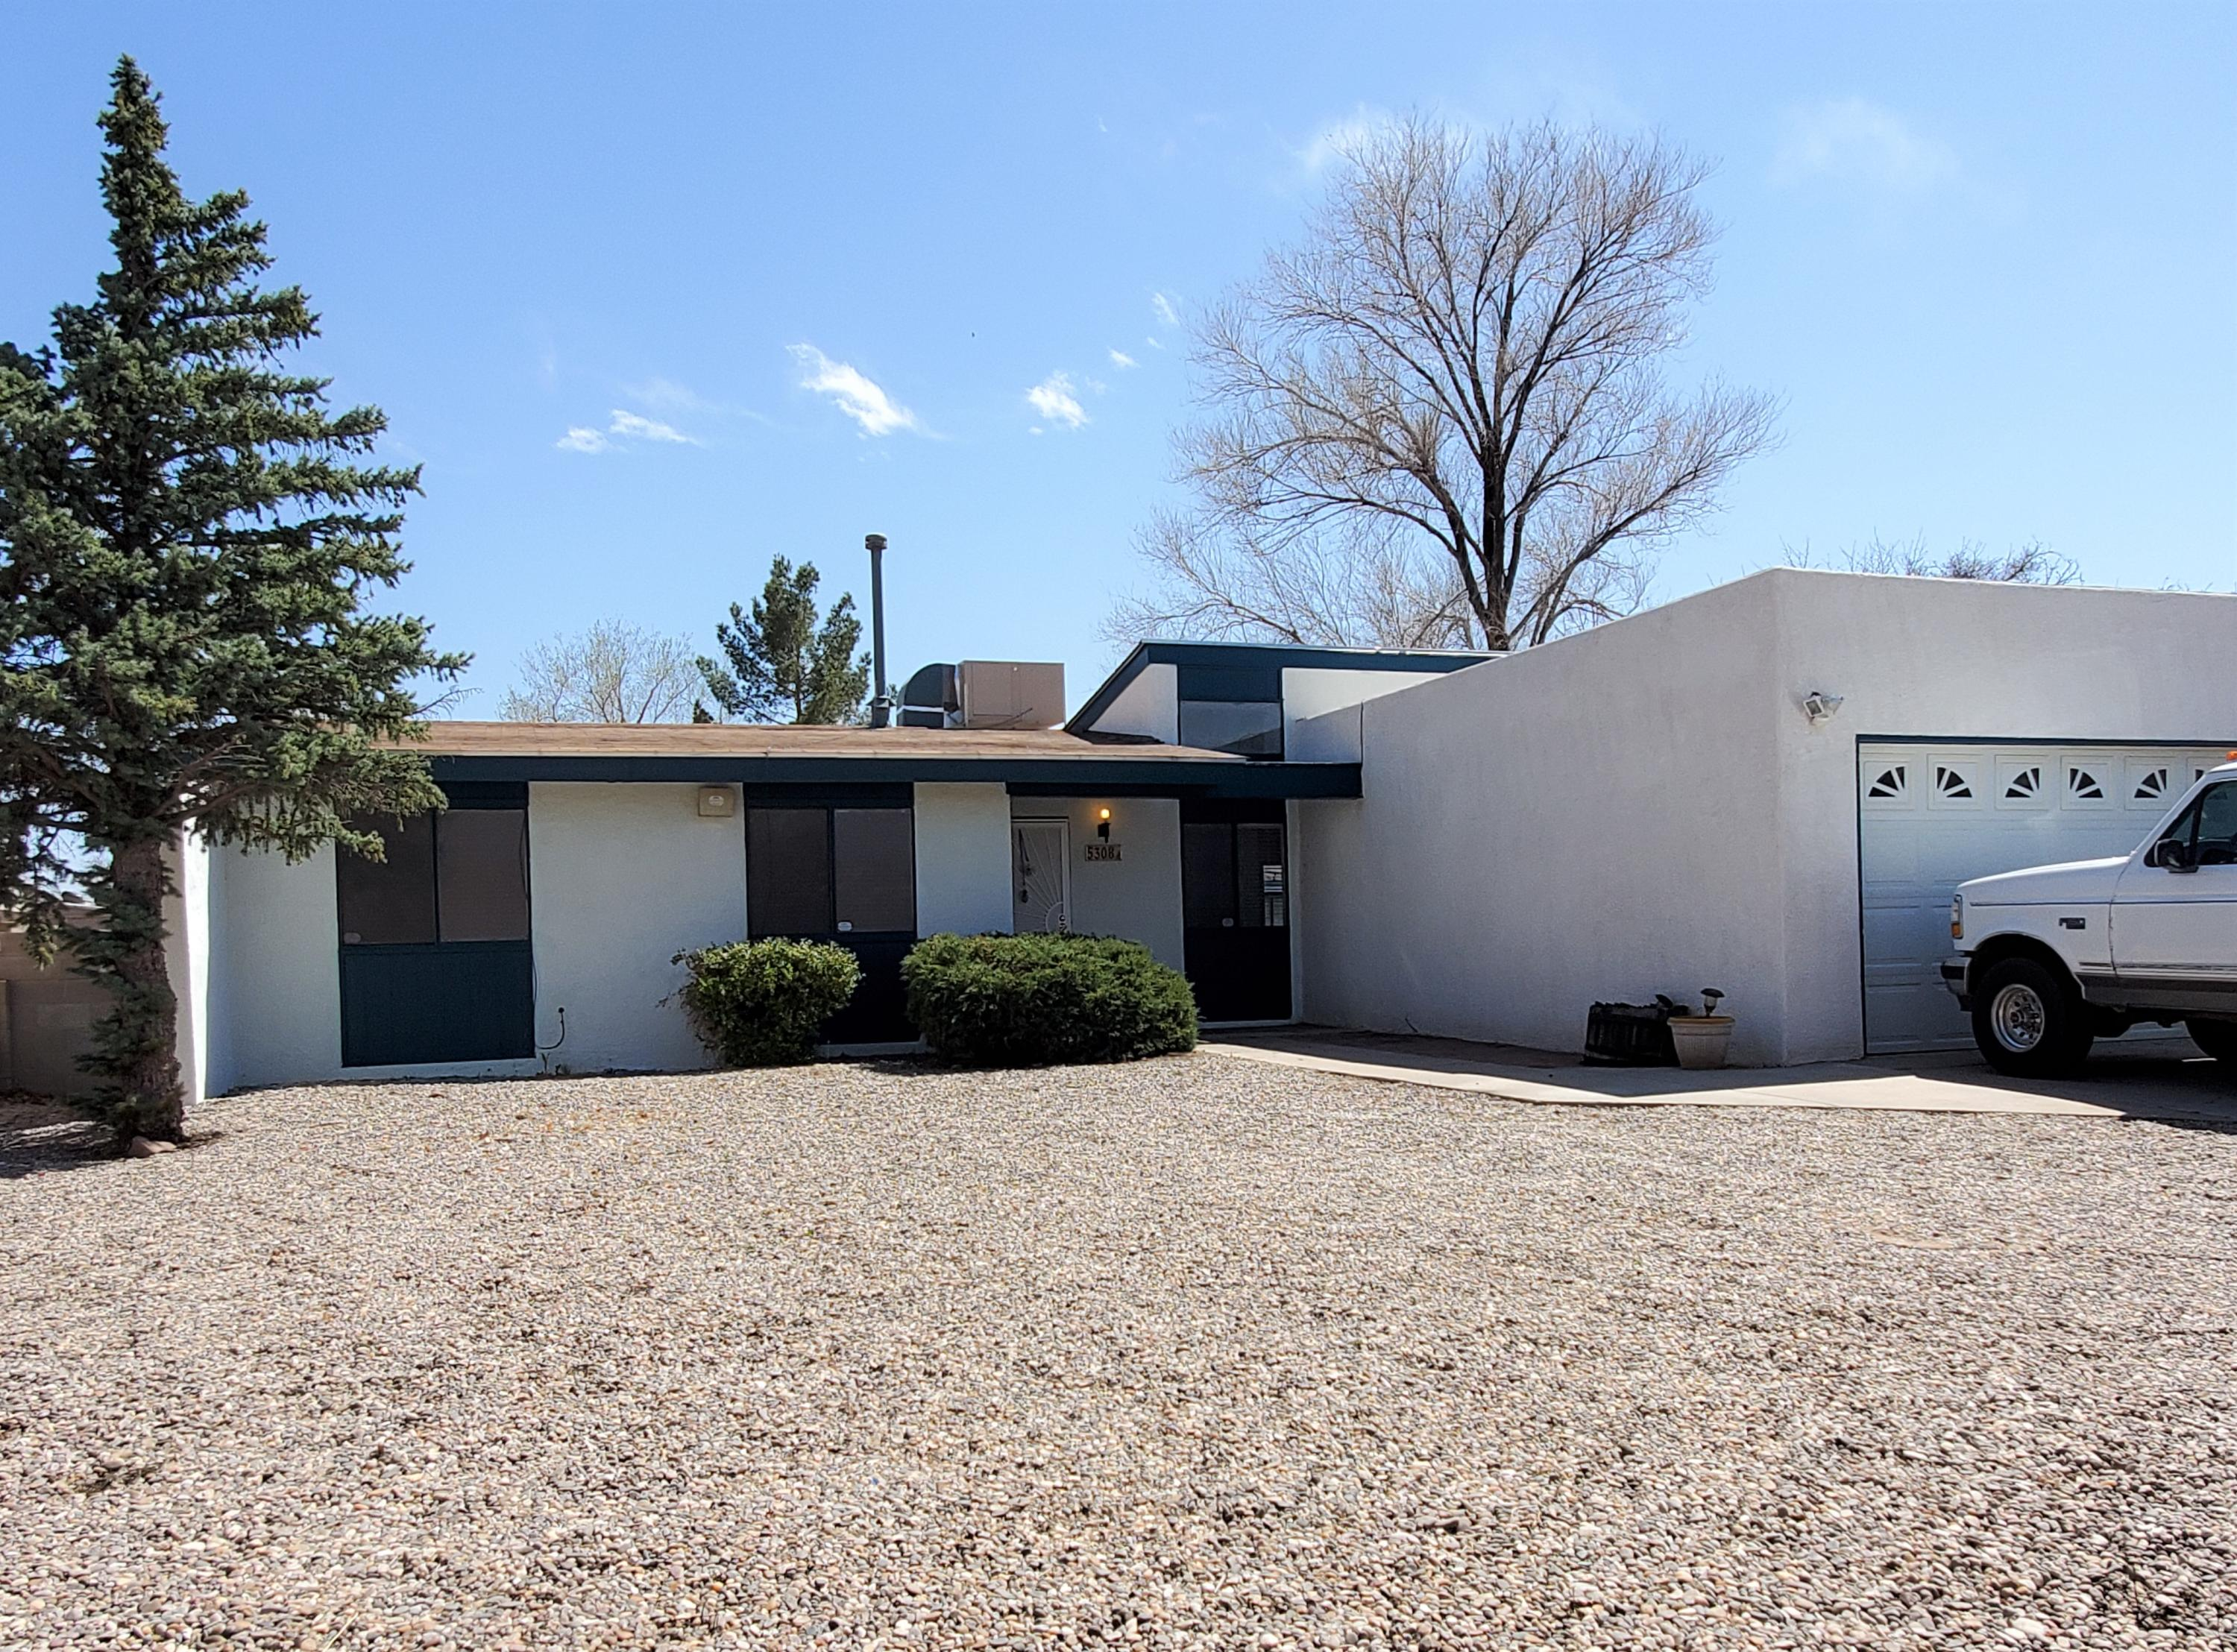 Open House Sun 4-18 (11am-4pm) Taylor Ranch, 1-Story, Estate Sale. 3 bedroom, 2 bathrooms, 2 car finished garage w/220 & multiple bright light fixtures. Open Kitchen with bar. Sunny dining area w/ high ceiling & windows as well as closet enclosing W/D. Family/living room w/ marble inlay mantle above fireplace opens to sunroom. Heater, A/C & Roof less than 5 years old! Large covered patio w/mountain views, gazebo w/brand new cover, large storage shed in backyard.  Large xeriscaped front yard, oversized driveway! Seller is open to appropriate allowances for carpet, paint & backyard landscaping with an acceptable offer or a small price reduction for an AS-Is offer! Seller recommends a home & termite inspection rather than rely on seller's disclosure since they have never lived in the home!